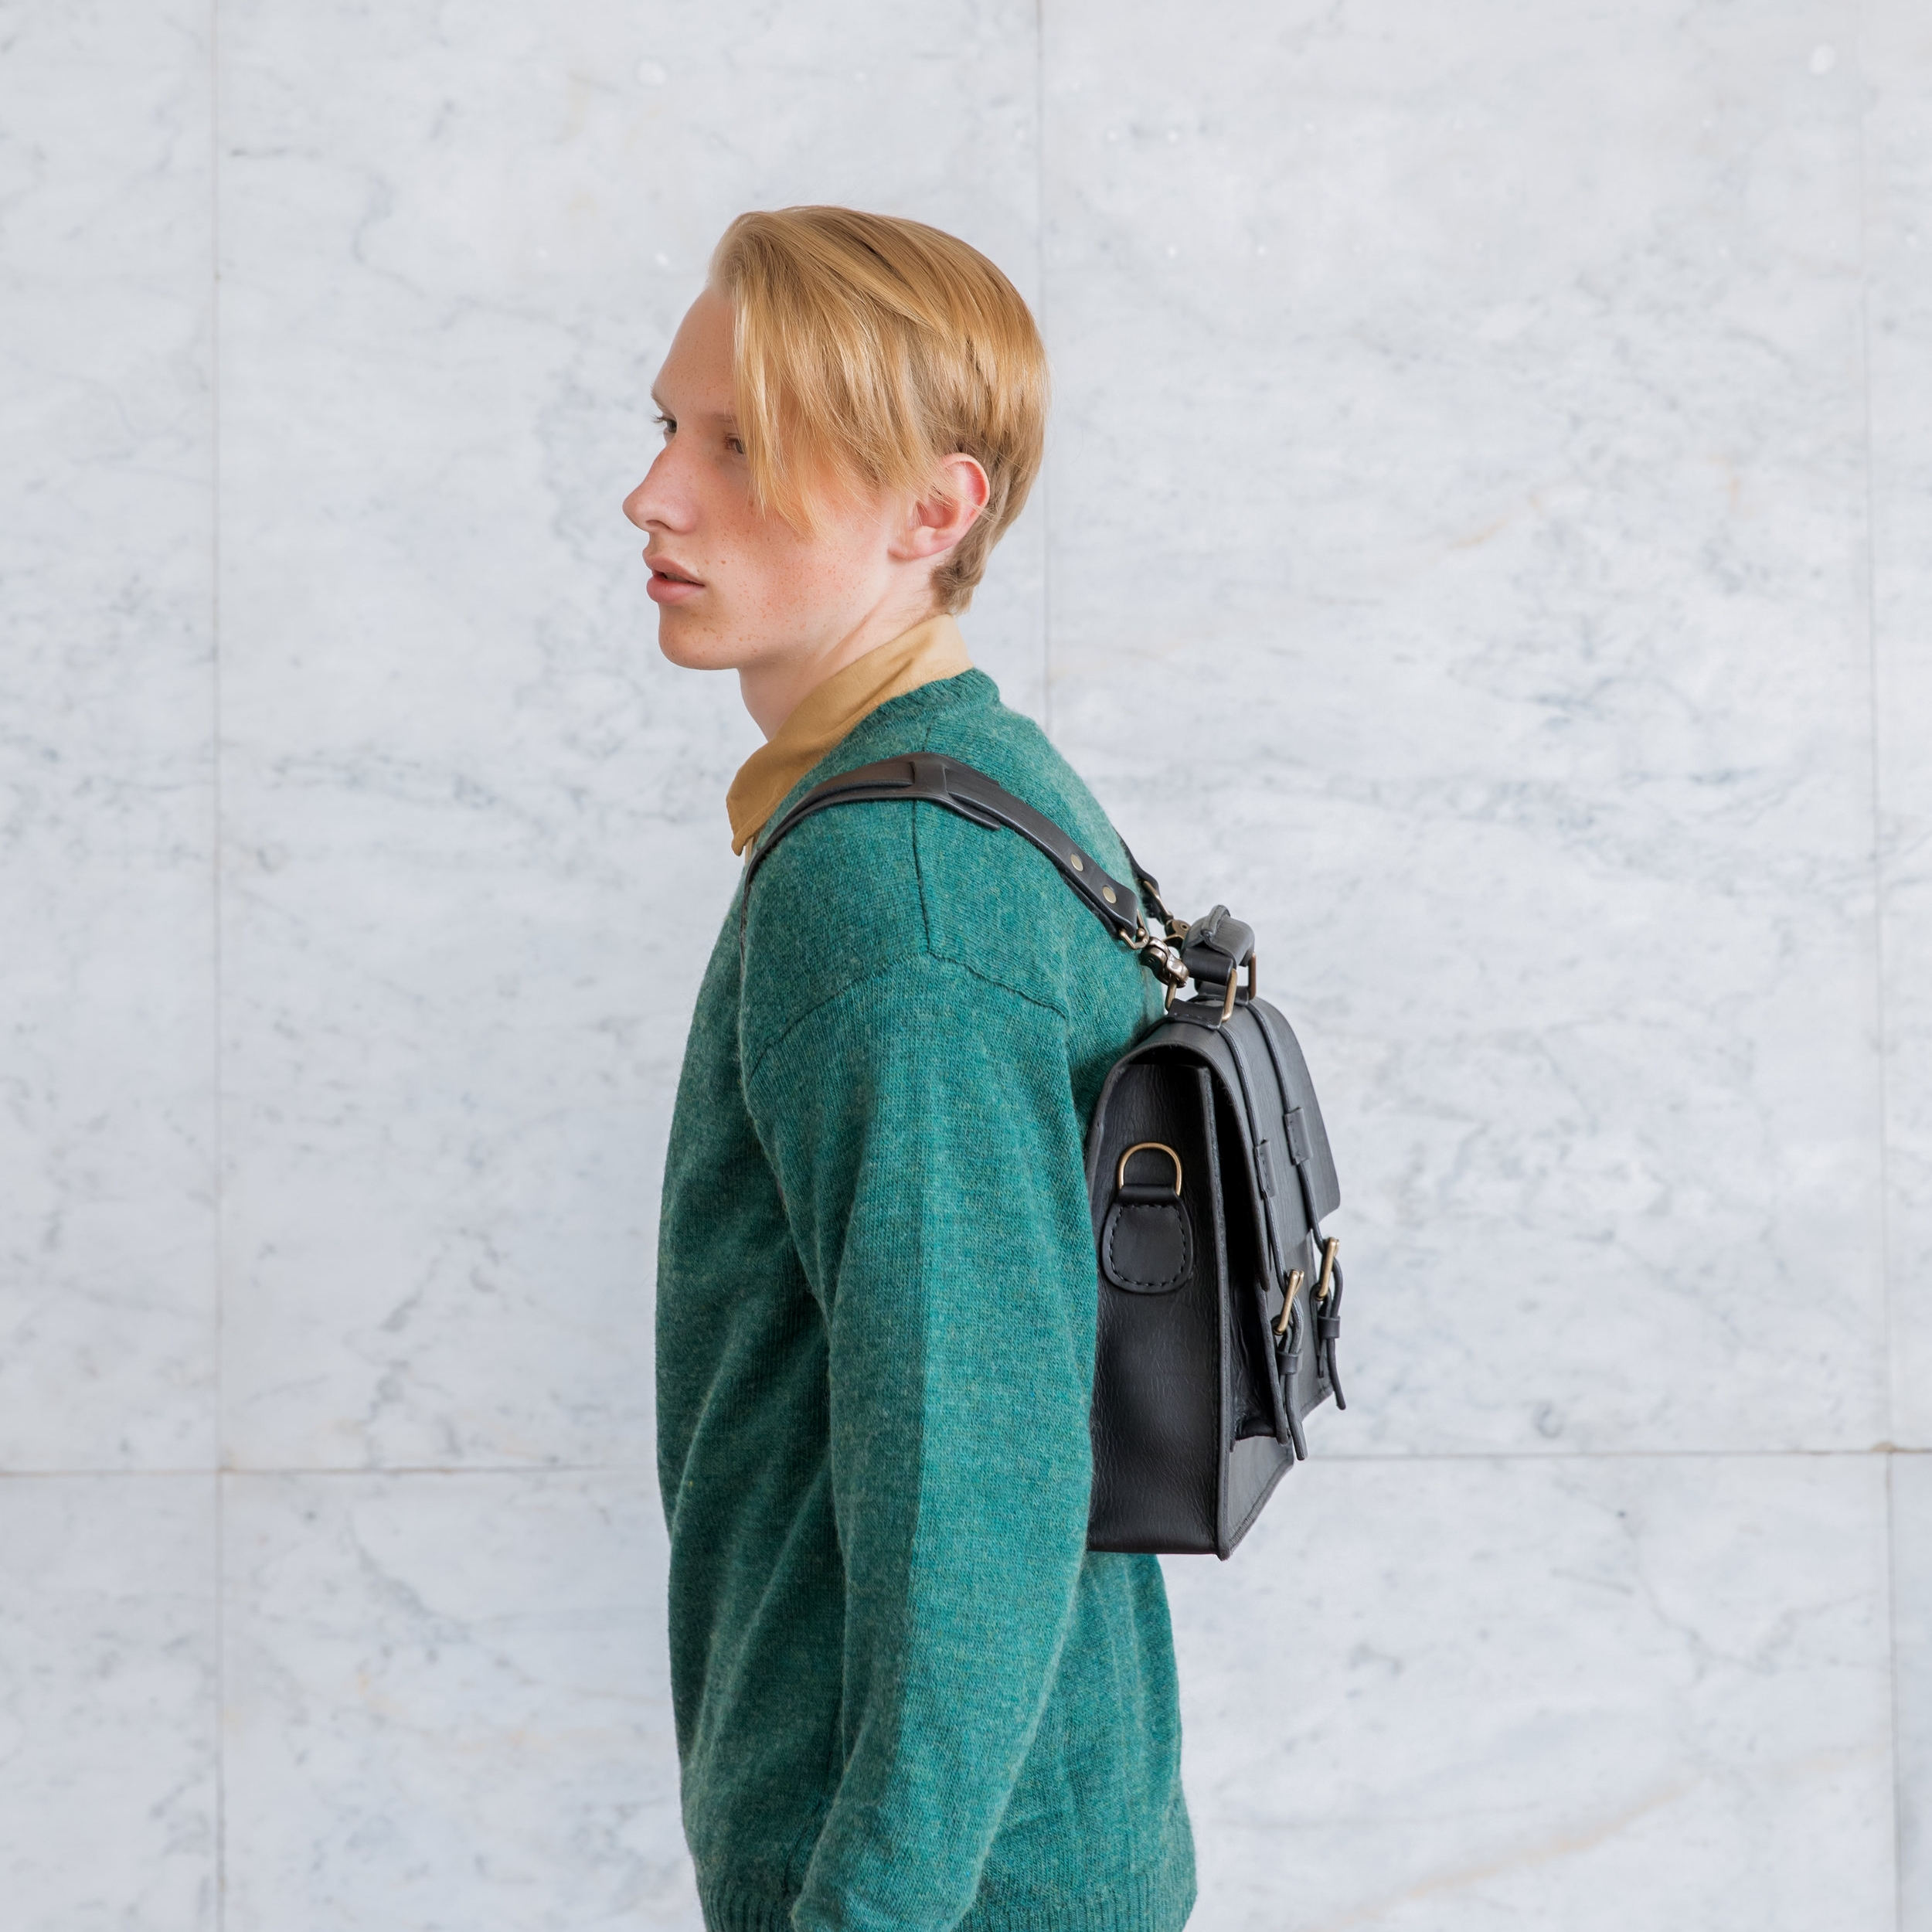 man with saddle stitched briefcase worn as backpack